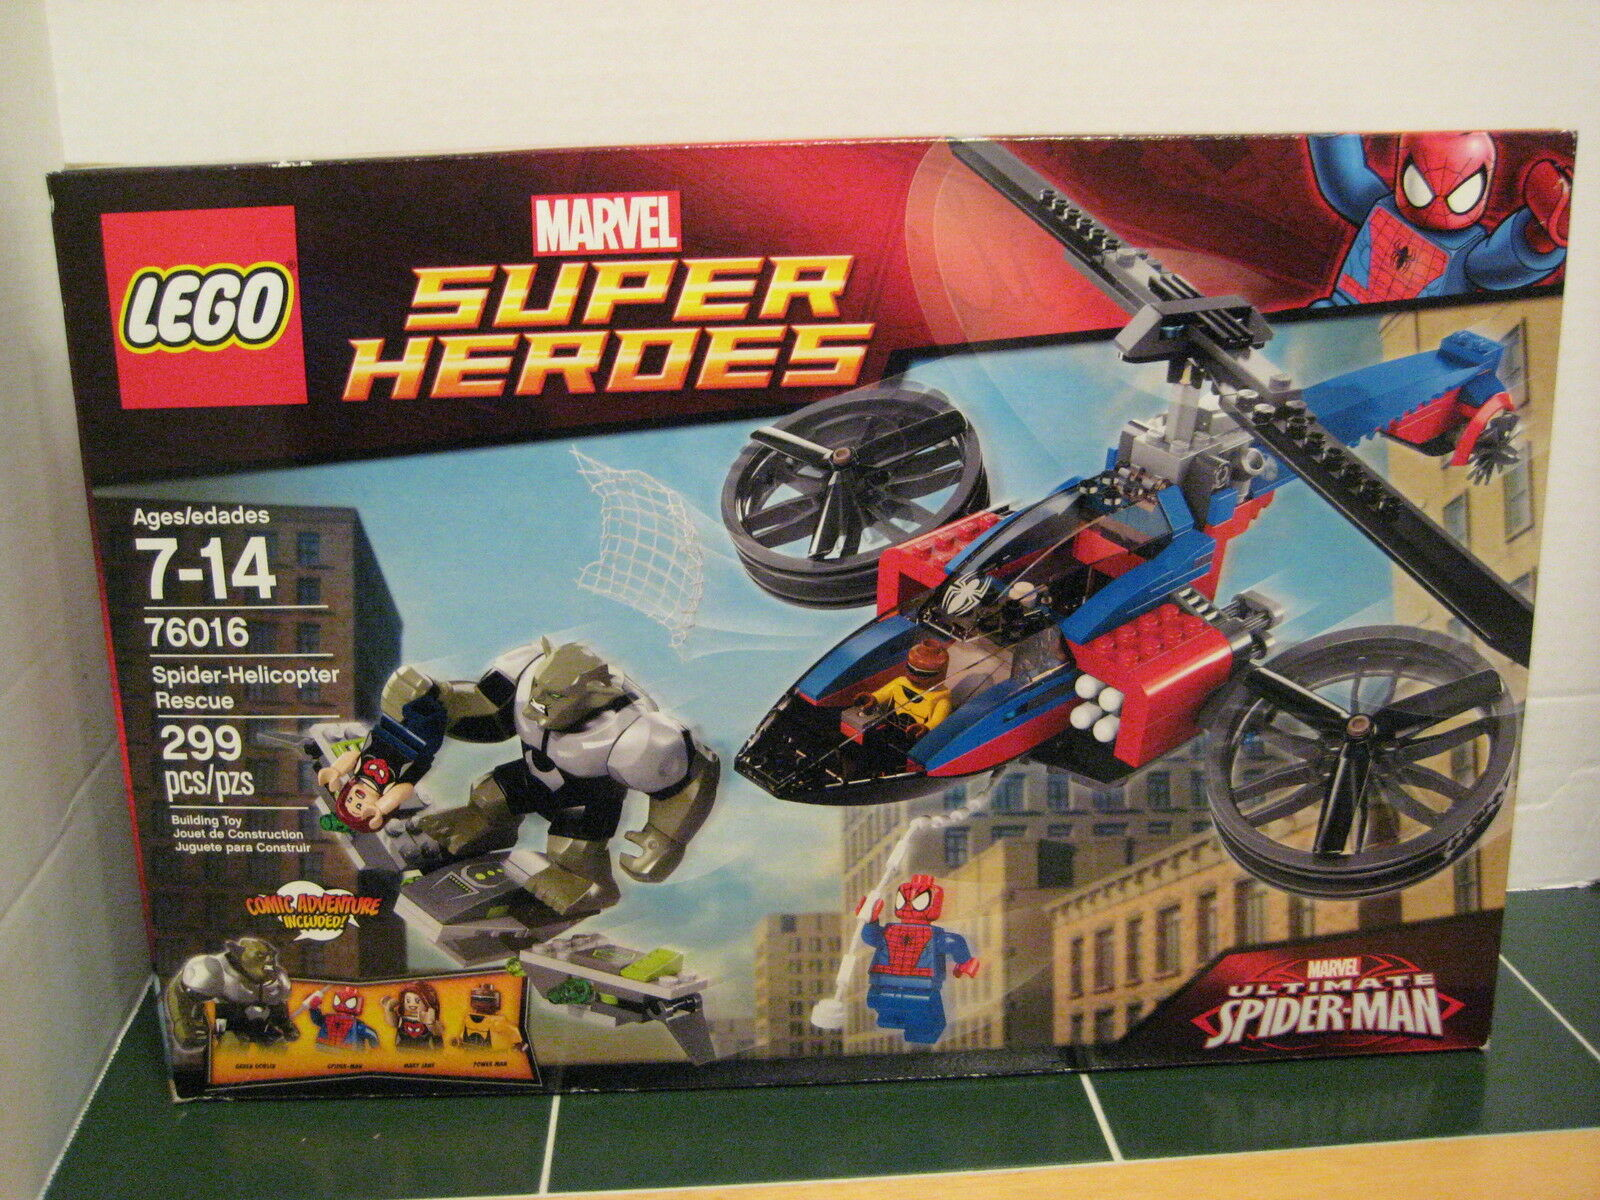 Lego Spider-Helicopter Rescue   76016 Marvel Super Heroes